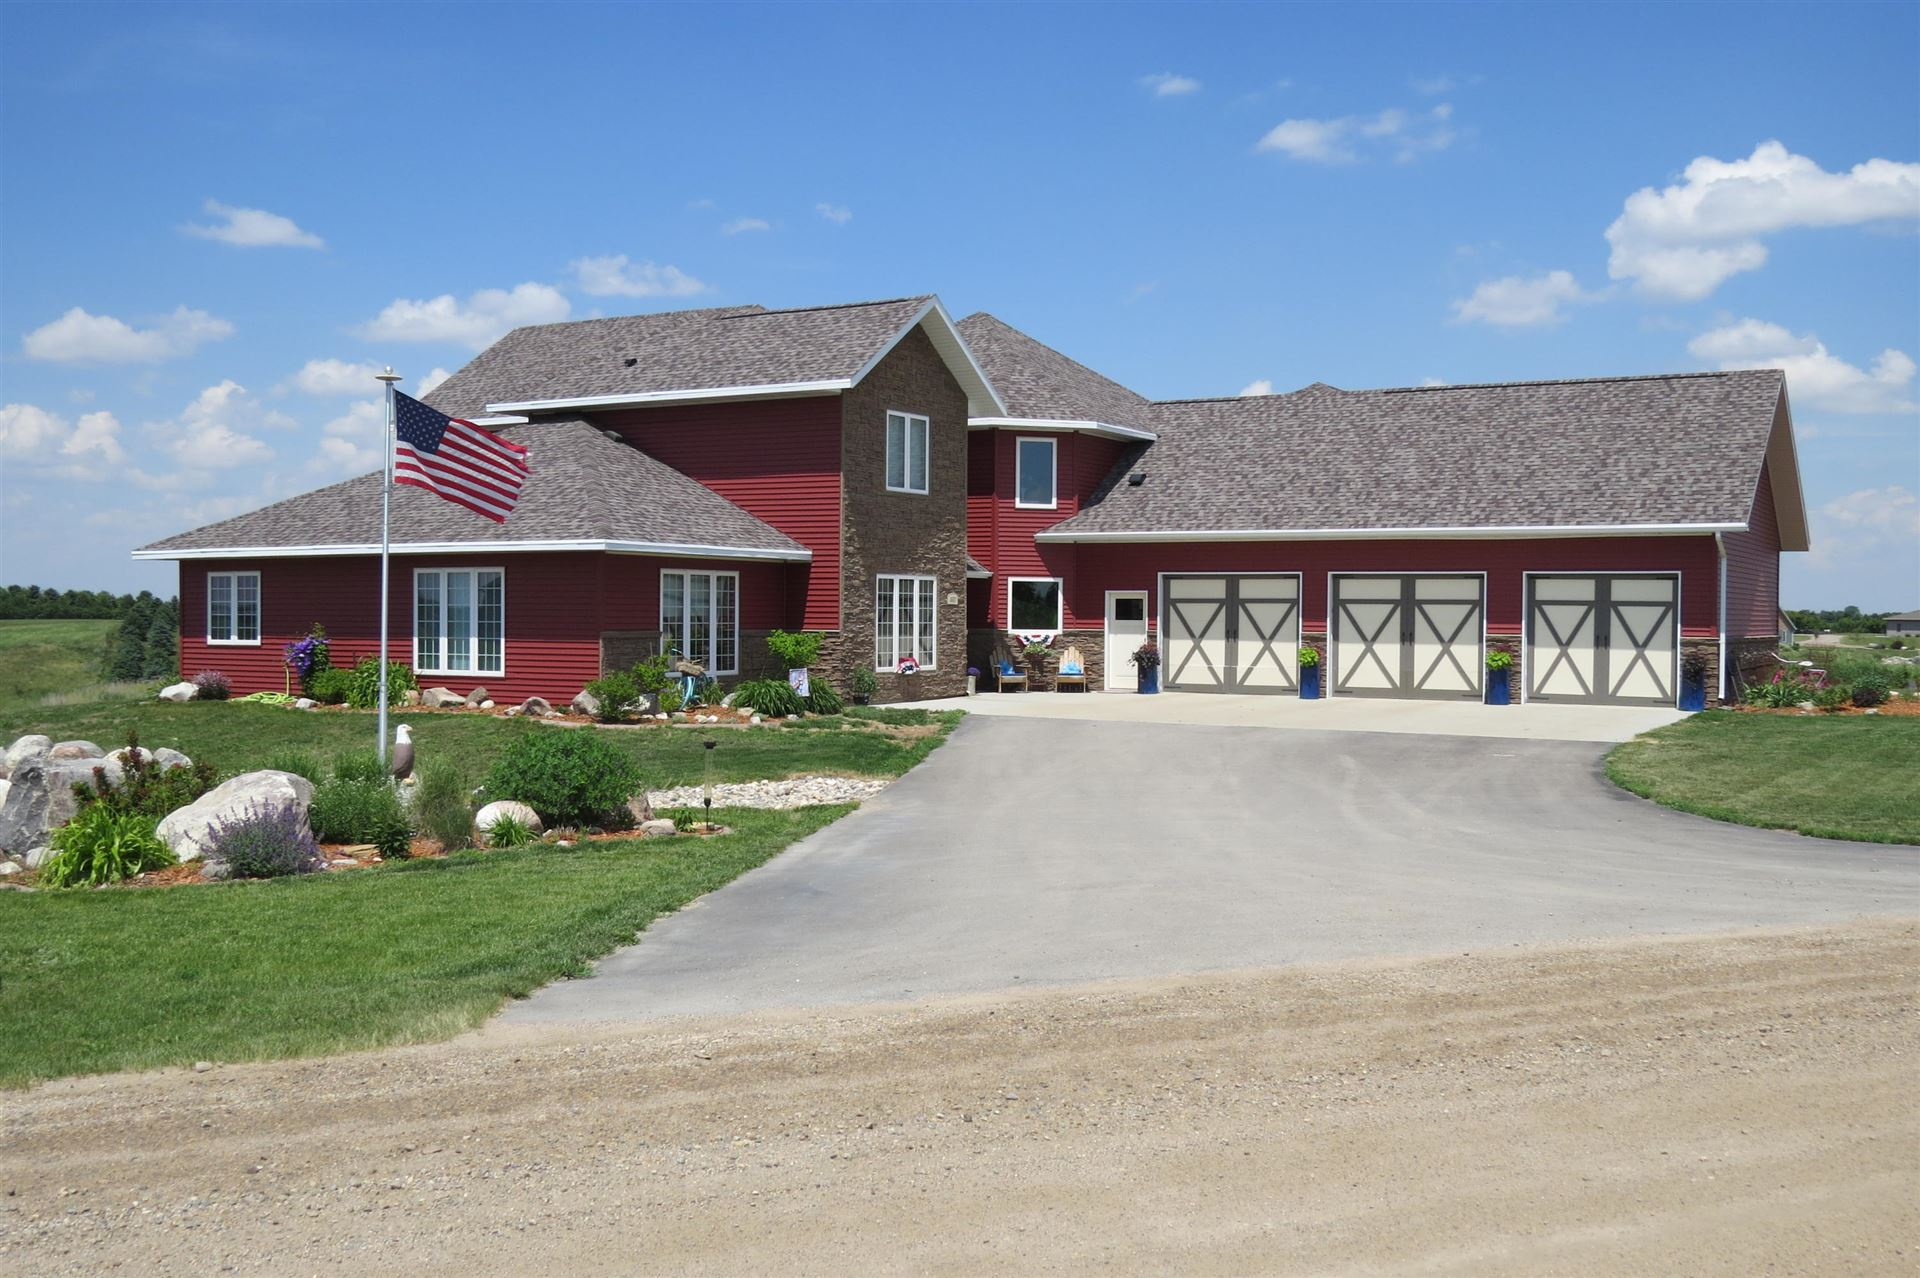 Photo for 3057 83 1/2 Ave SE, Jamestown, ND 58401 (MLS # 28-214)